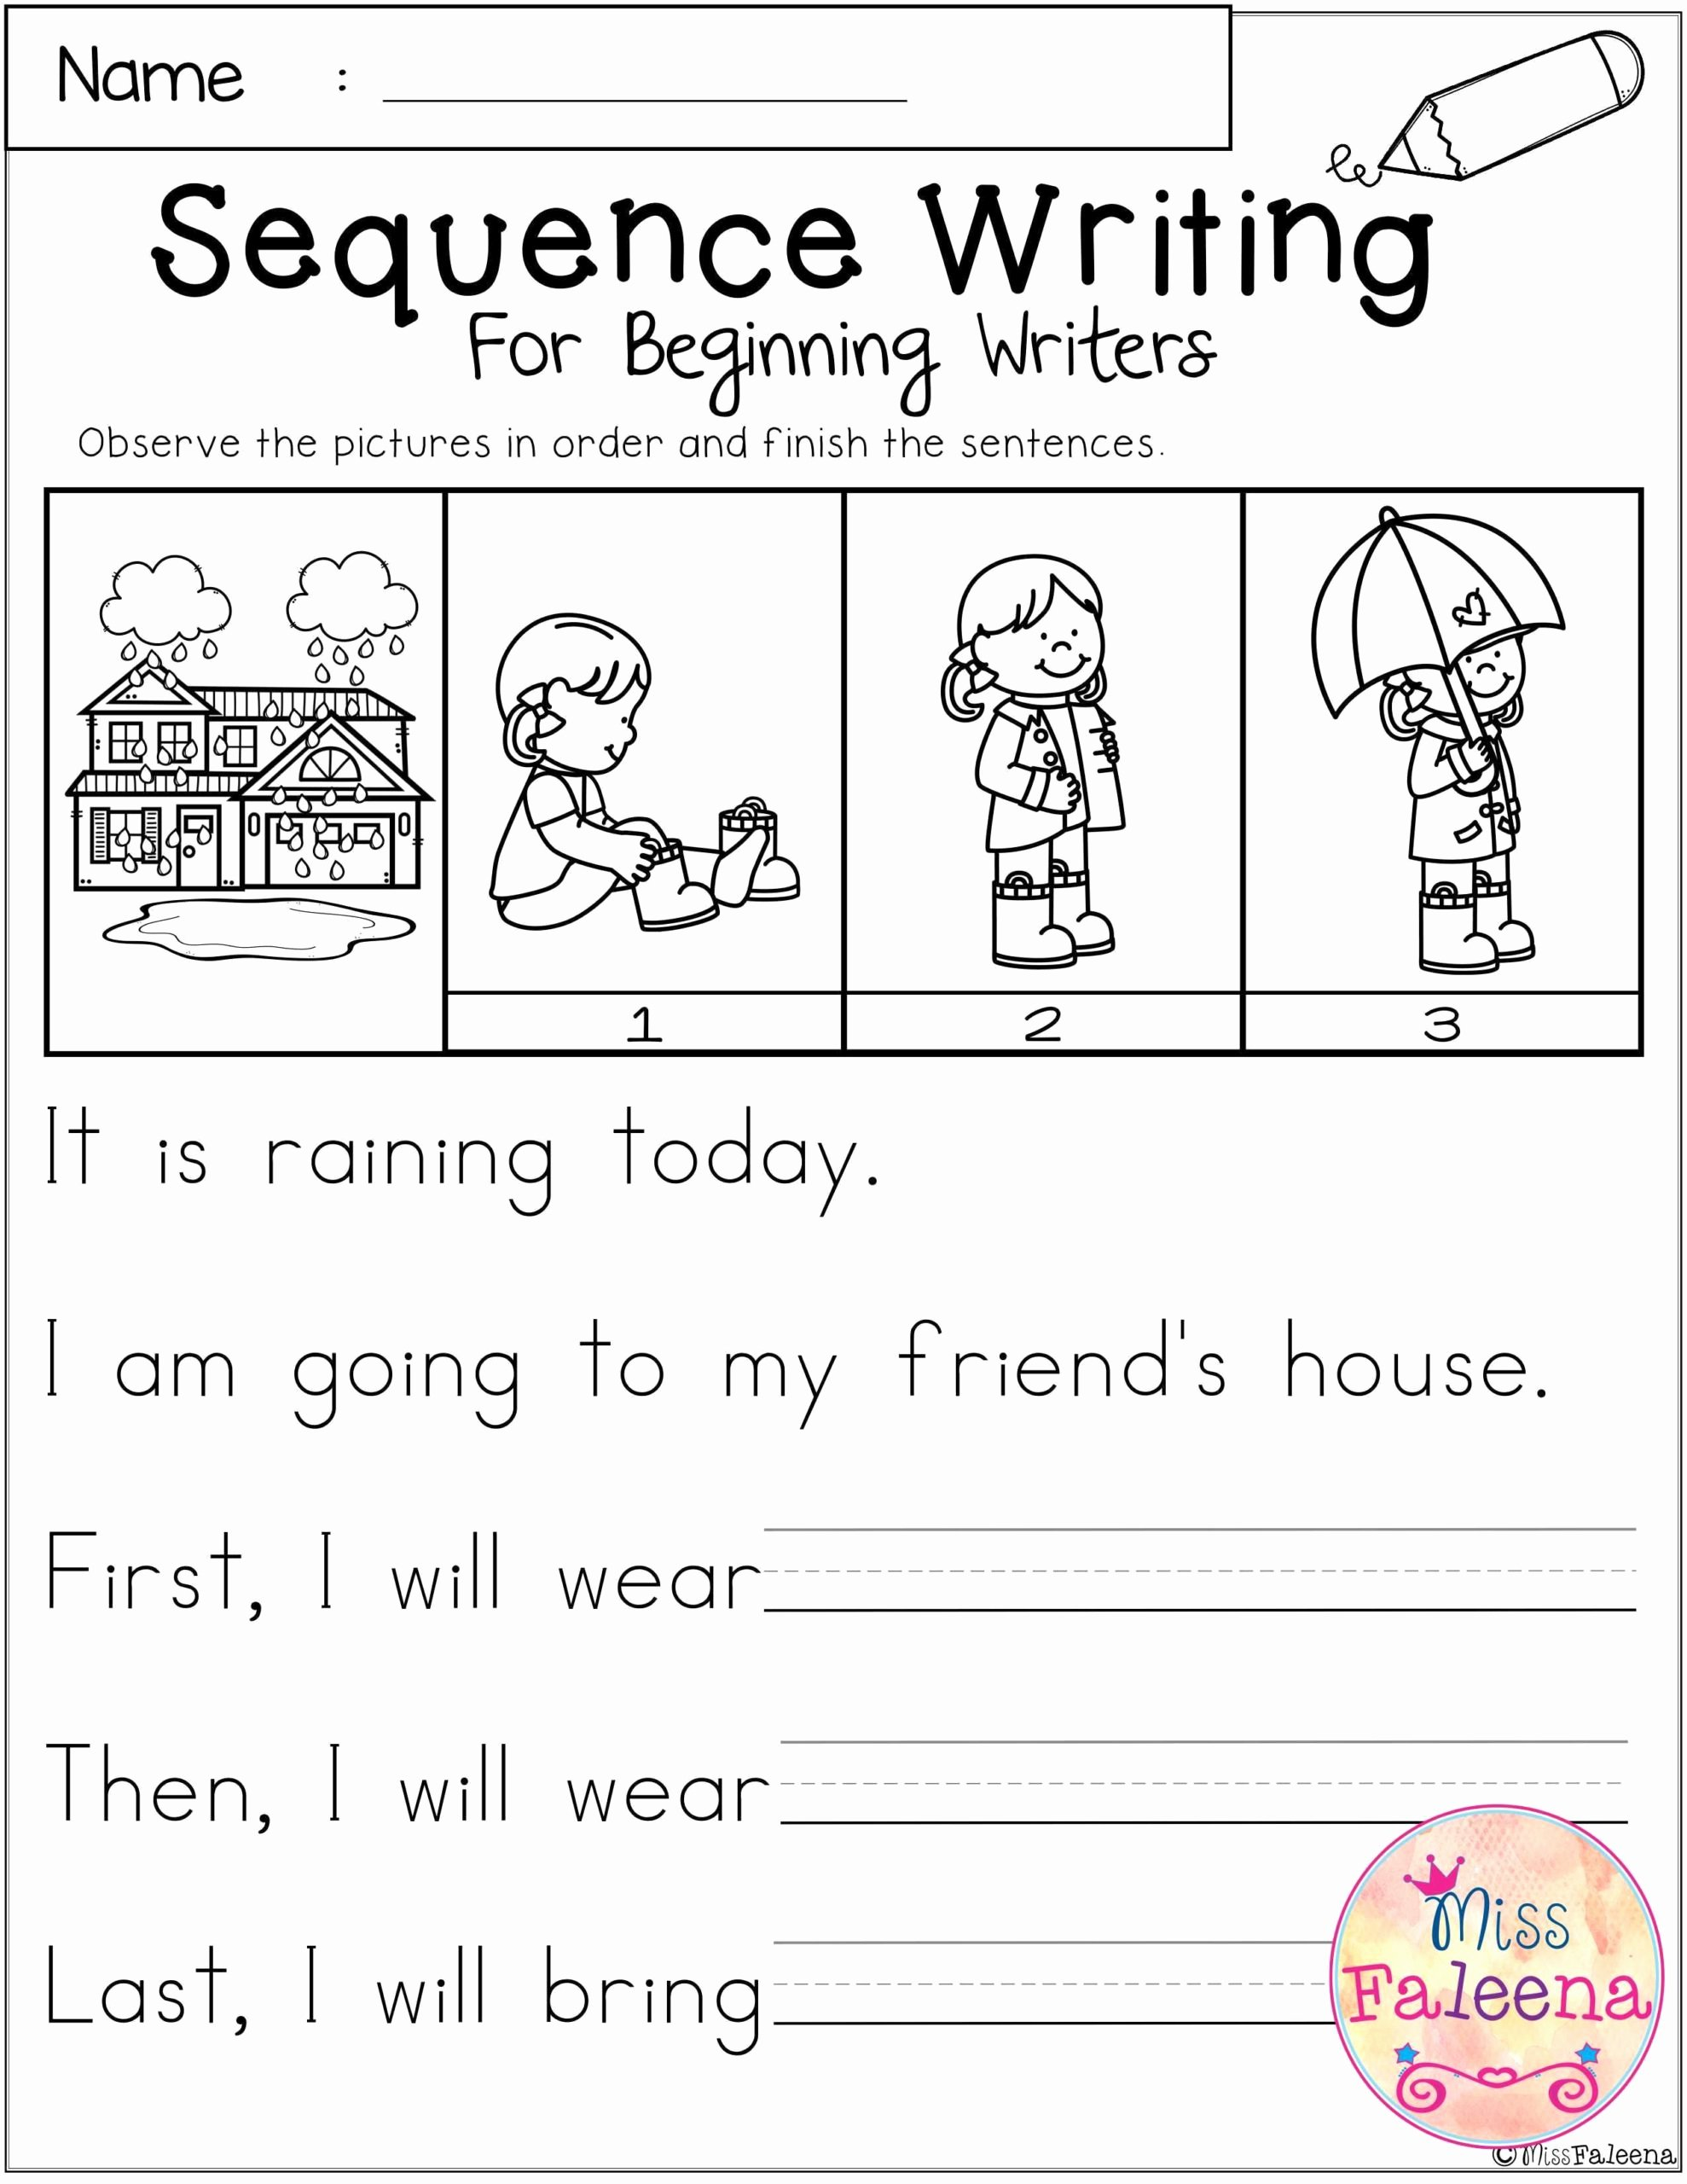 March Worksheets for Preschoolers Beautiful March Sequence Writing for Beginning Writers with